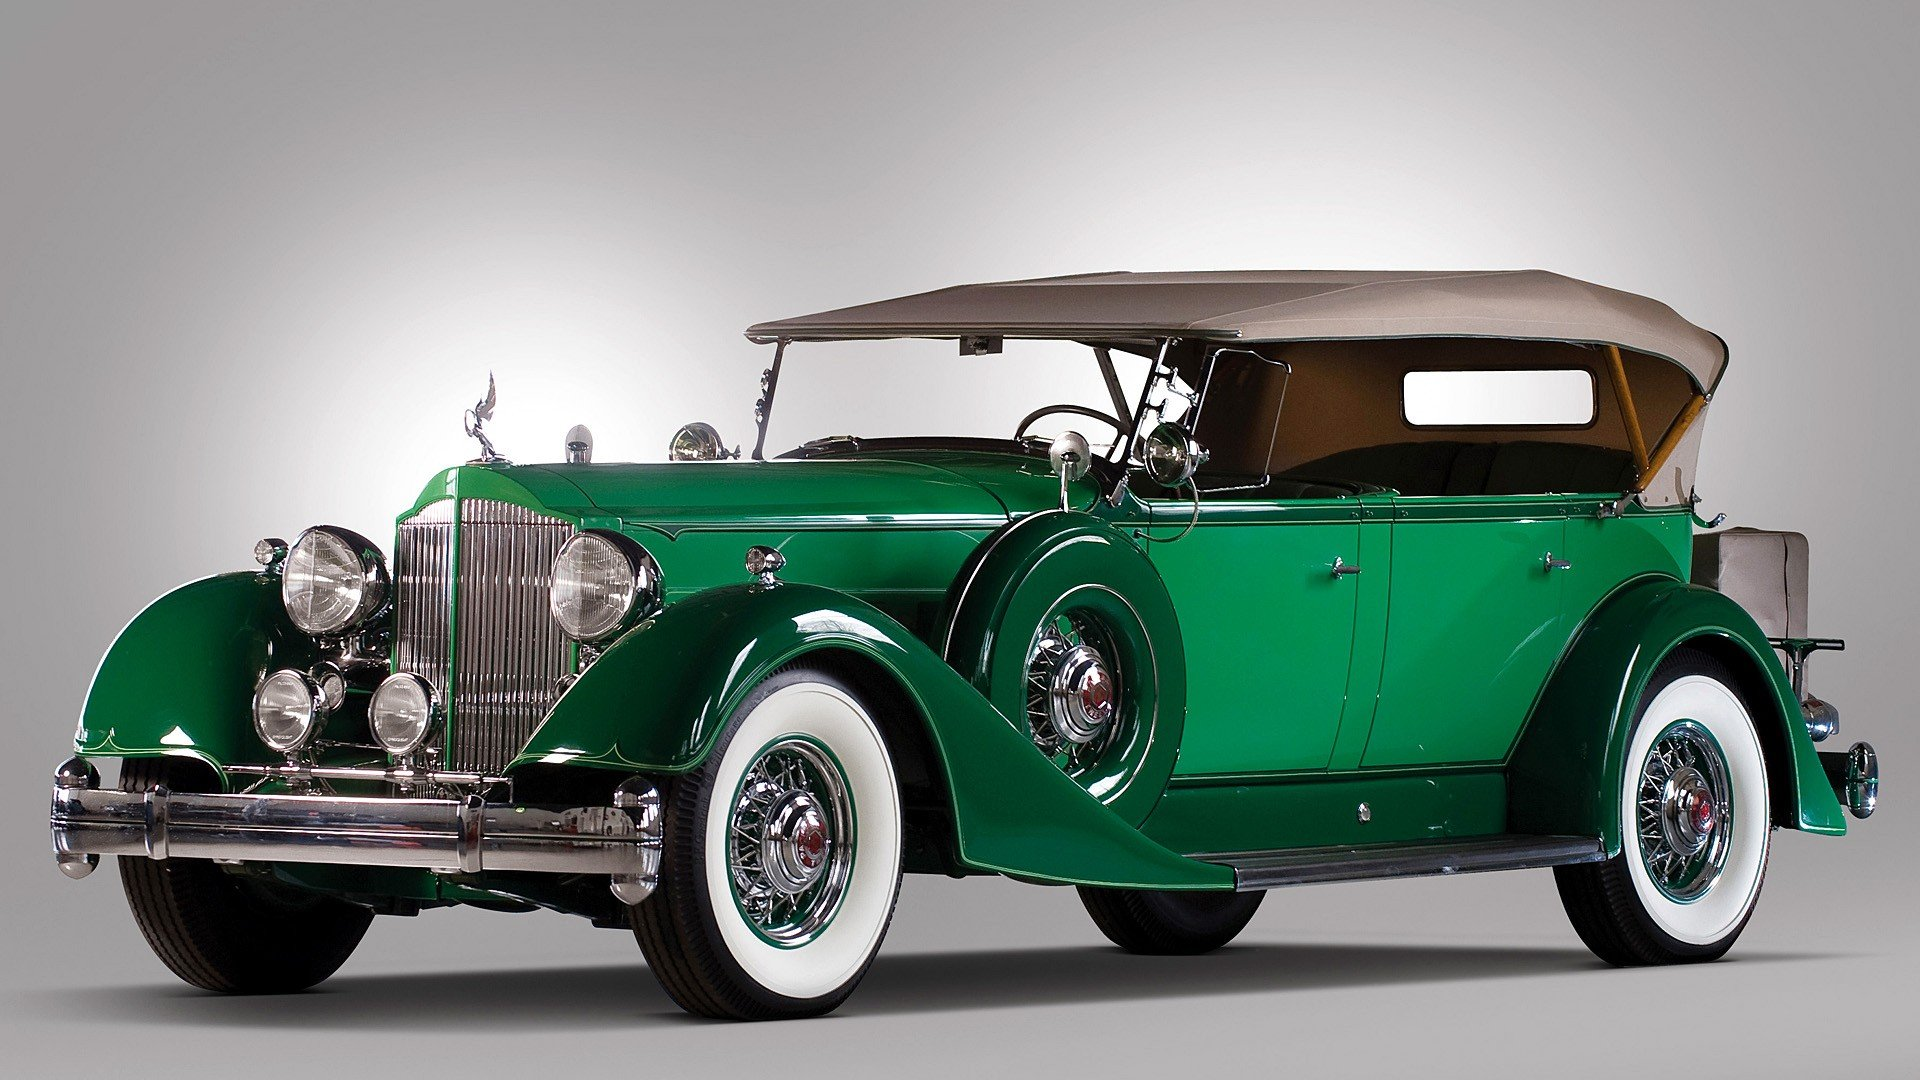 Vintage Cars Wallpapers Best Wallpapers 1920x1080